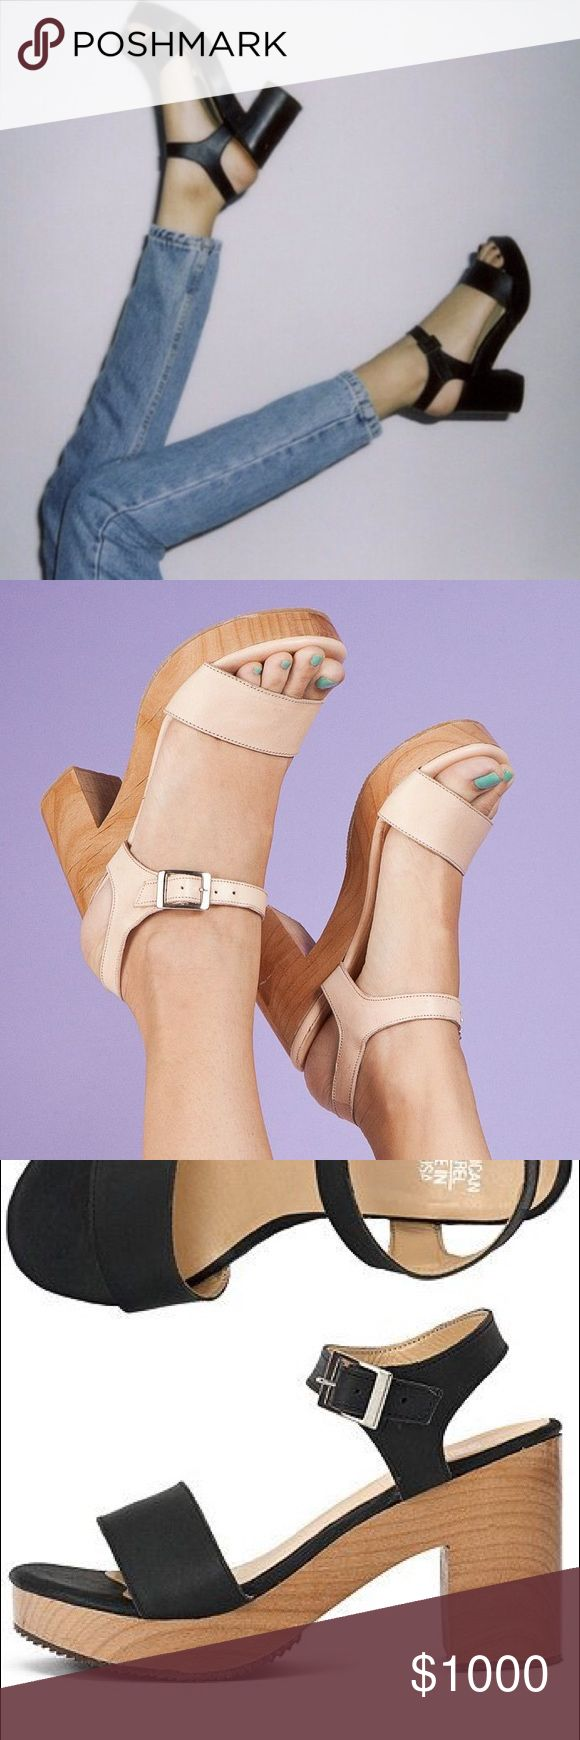 ISO American Apparel Sandal with Heel ISO this shoe in any colour! 💕 American Apparel Shoes Heels